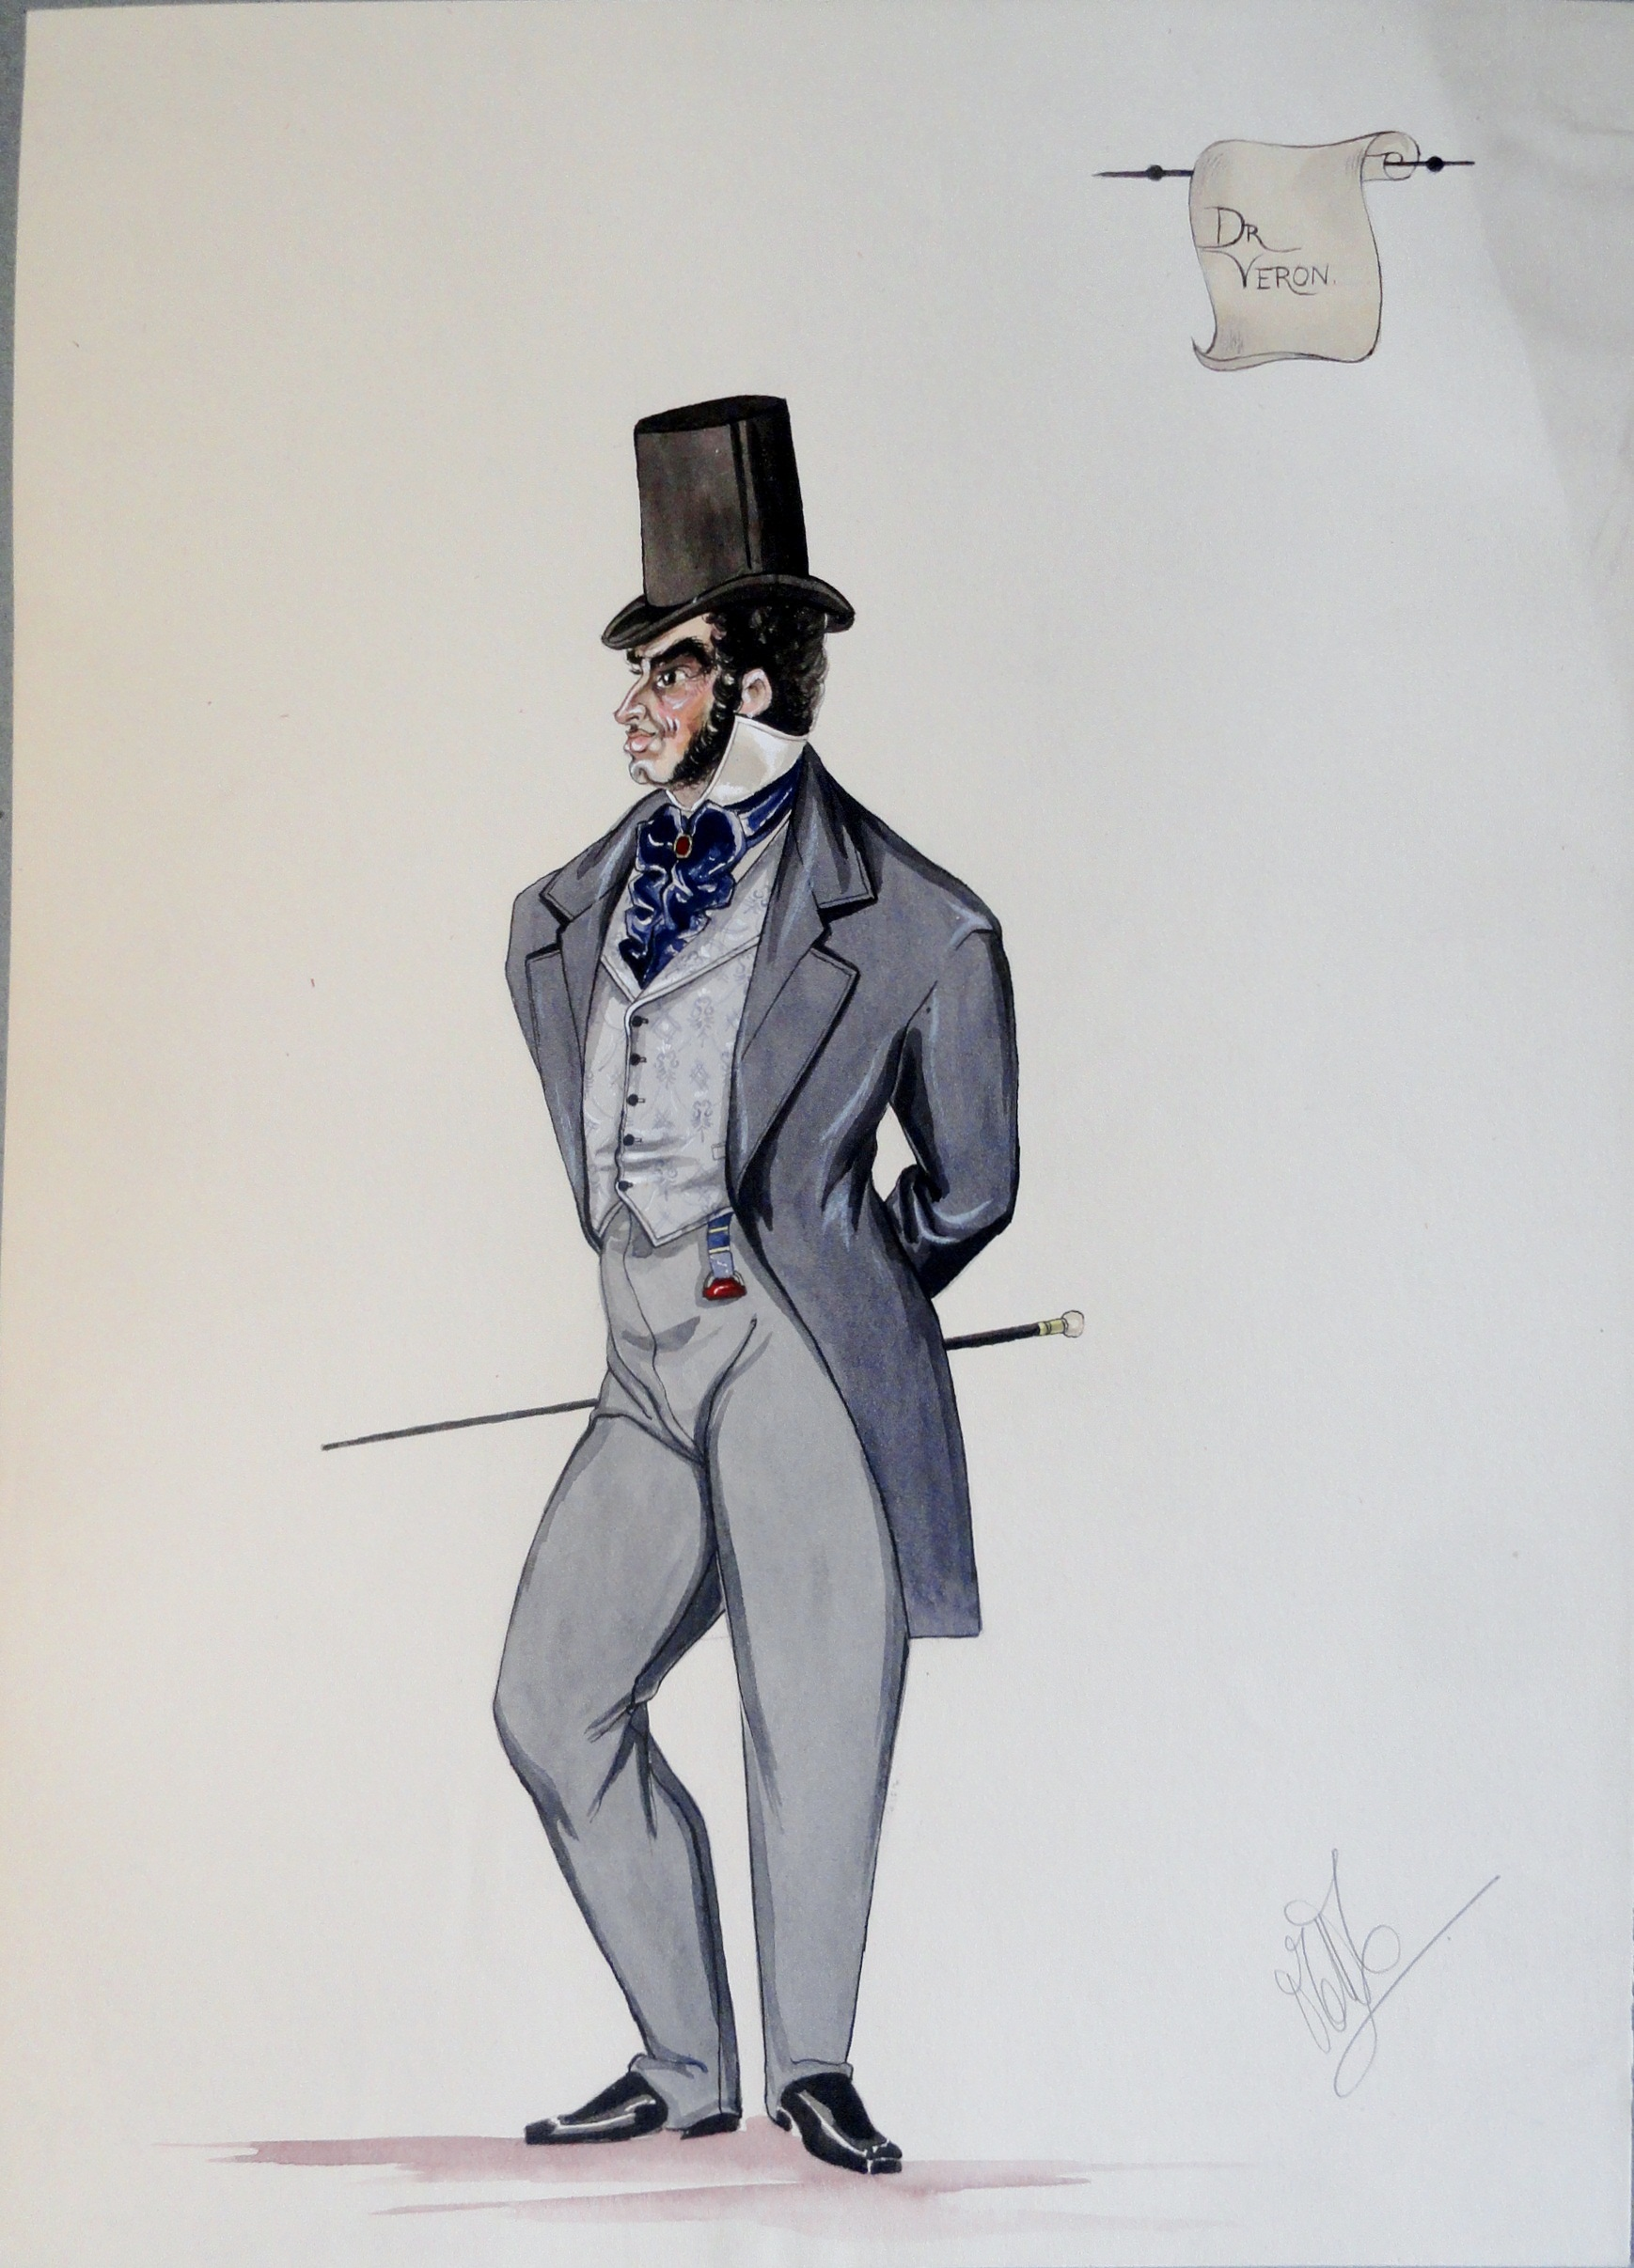 Dr Veron in grey suit, blue tie, stove pipe hat, and ruby colored fob at waist.  Pen and Ink and Watercolor. From the Rachel Portfolio by Owen Hyde Clark. $300.00.